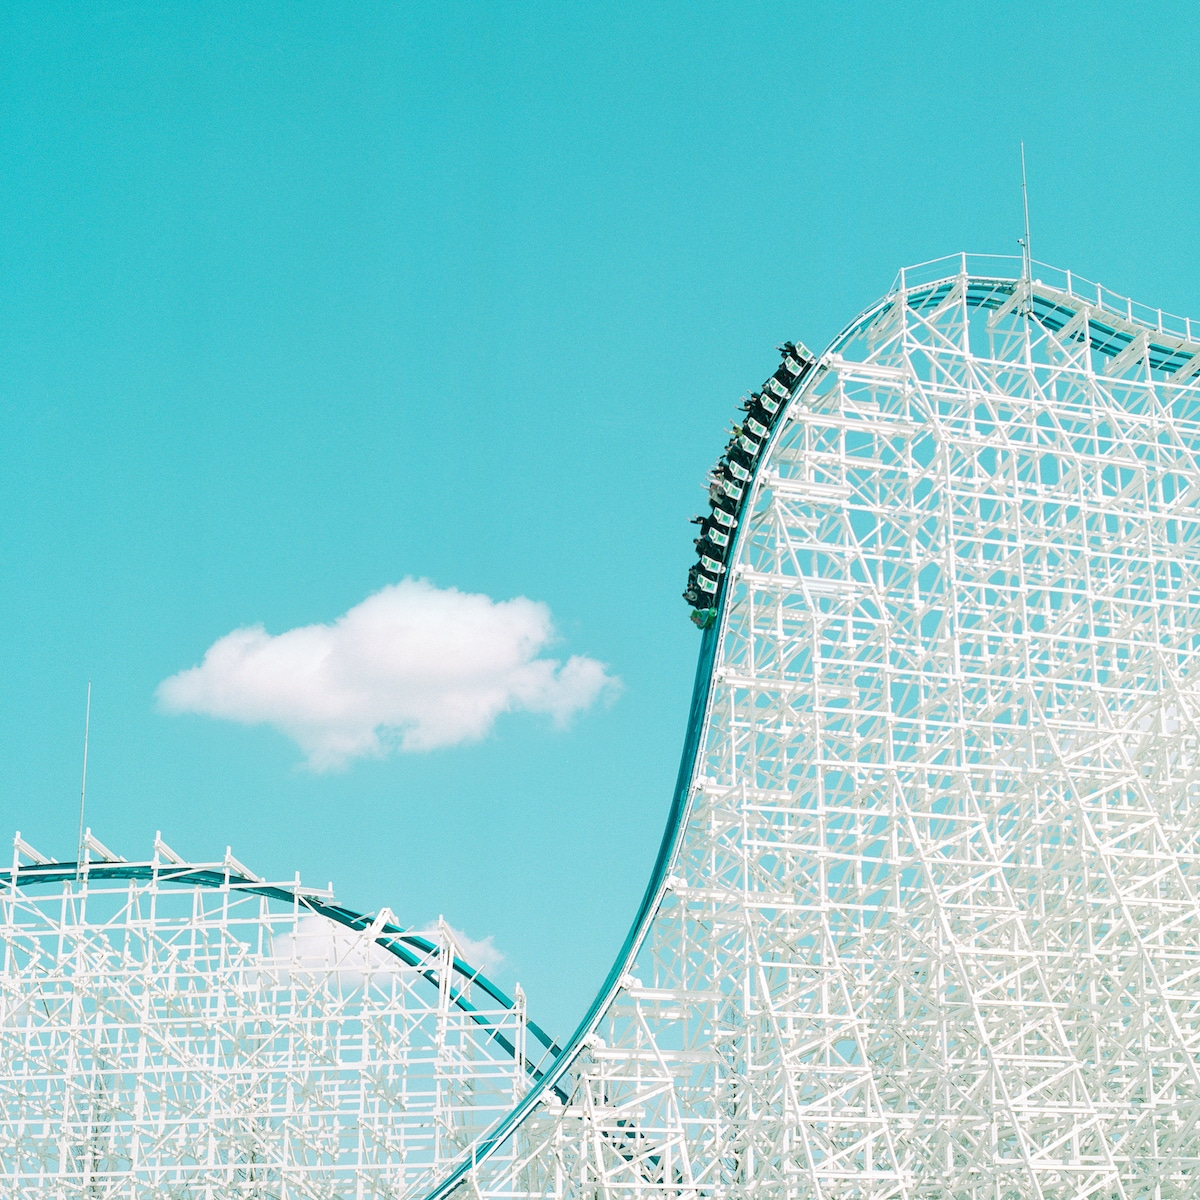 Nagashima Spa Land Roller Coaster